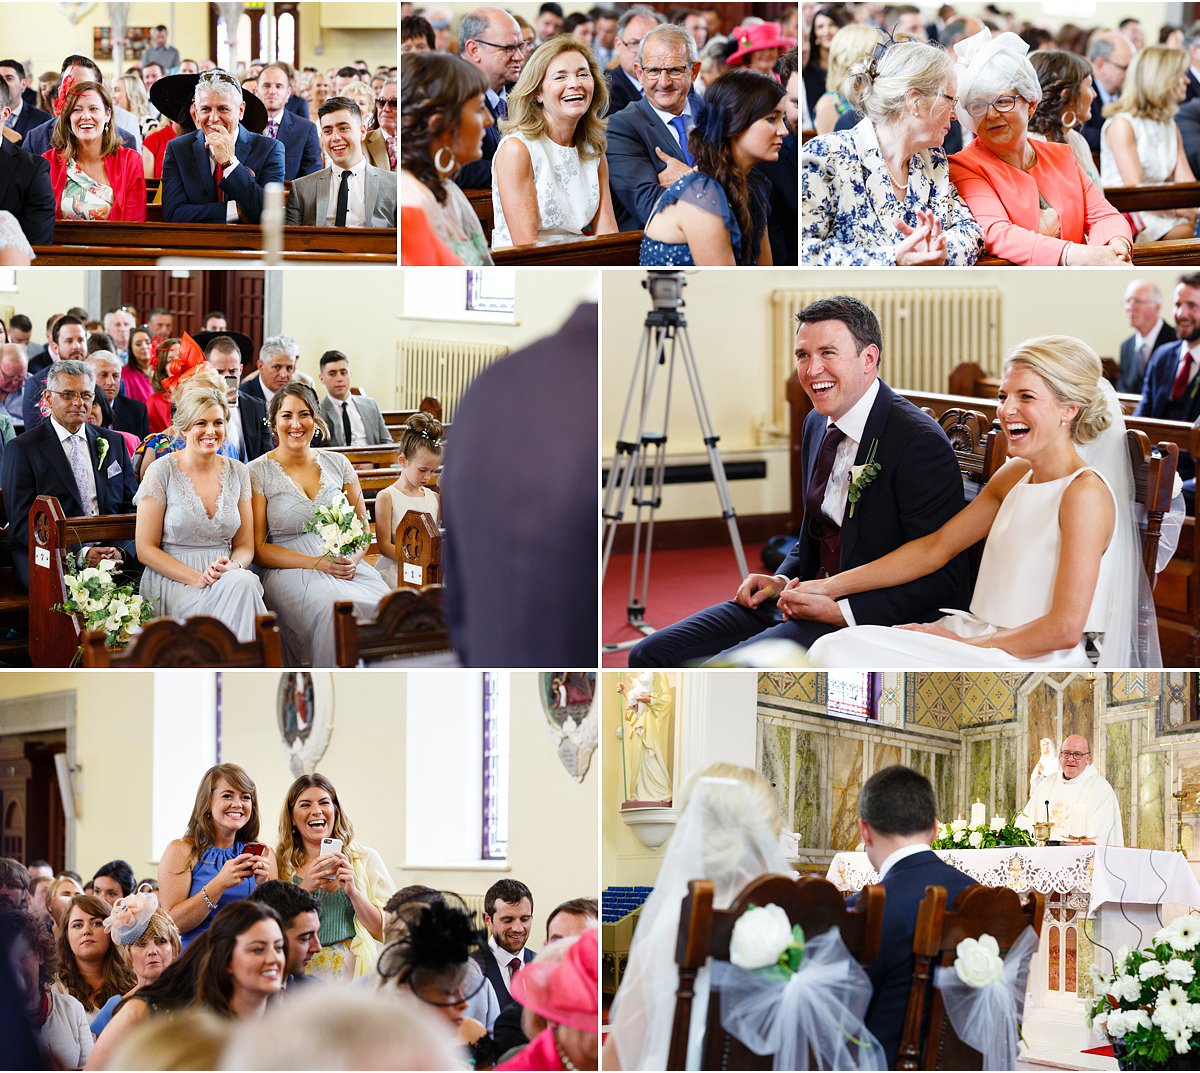 7 small photographs of wedding guest laughing